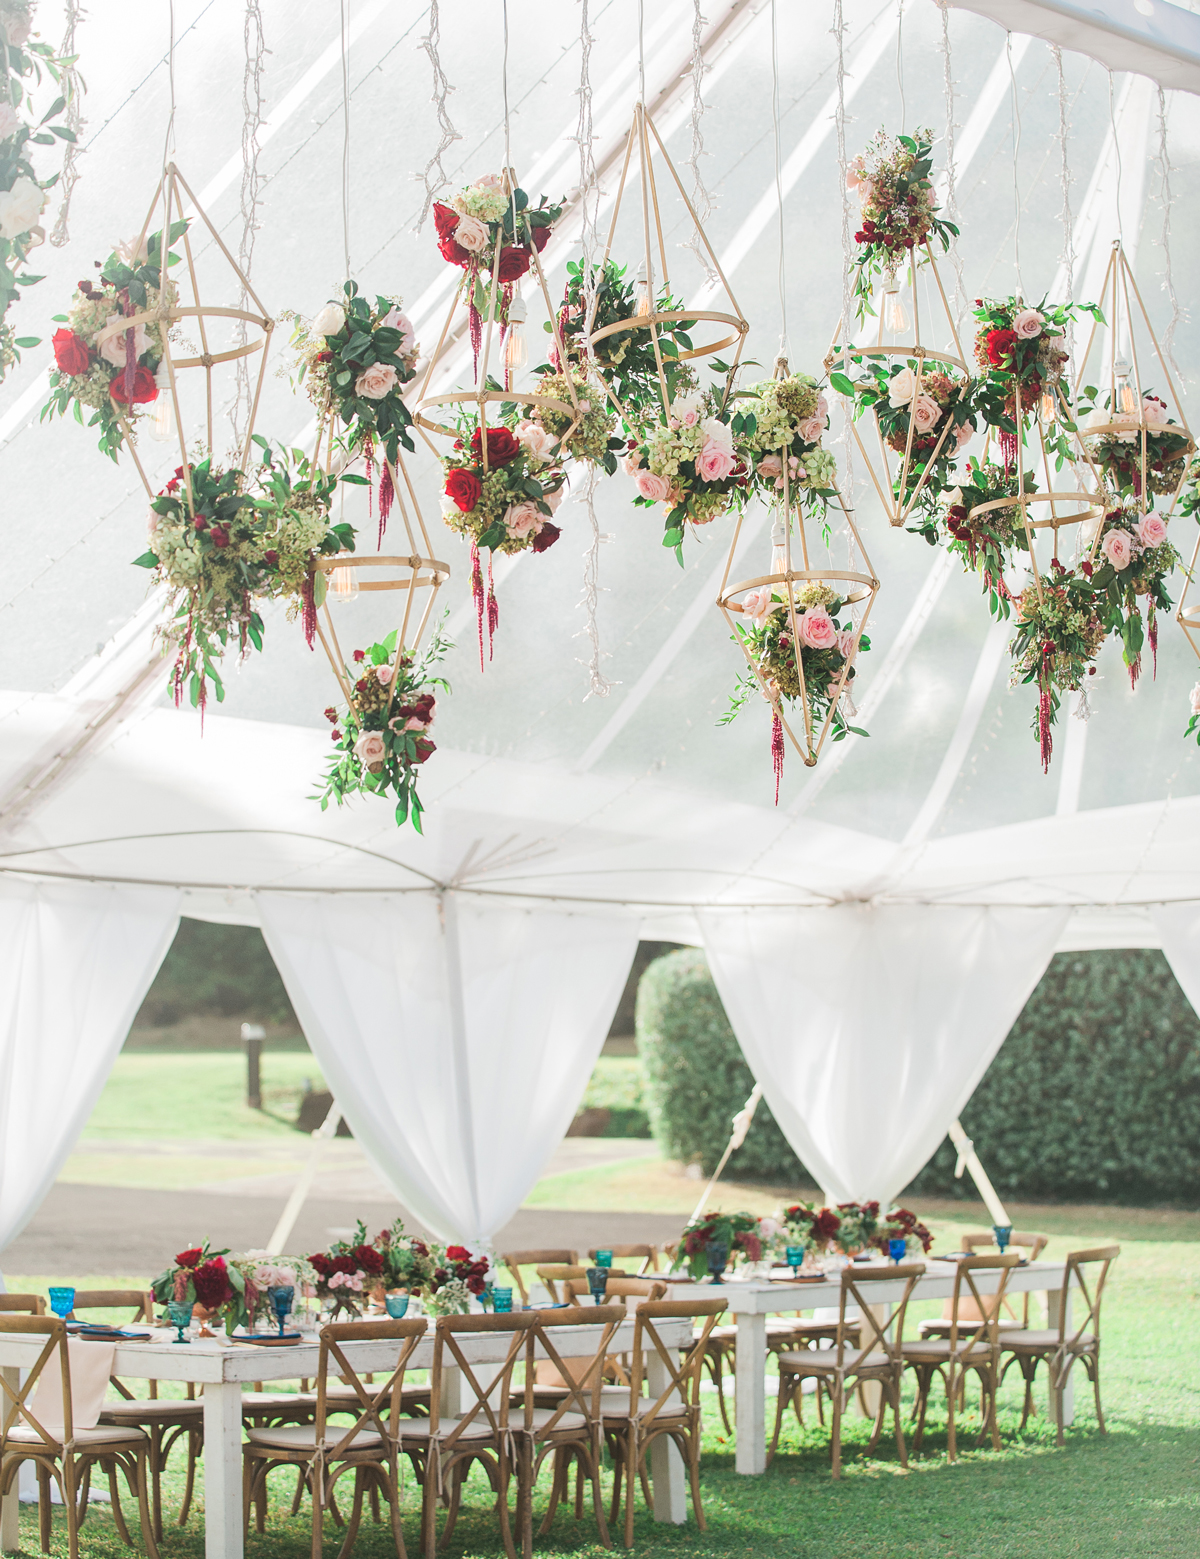 Geometric Gold hanging Structures with floral decor